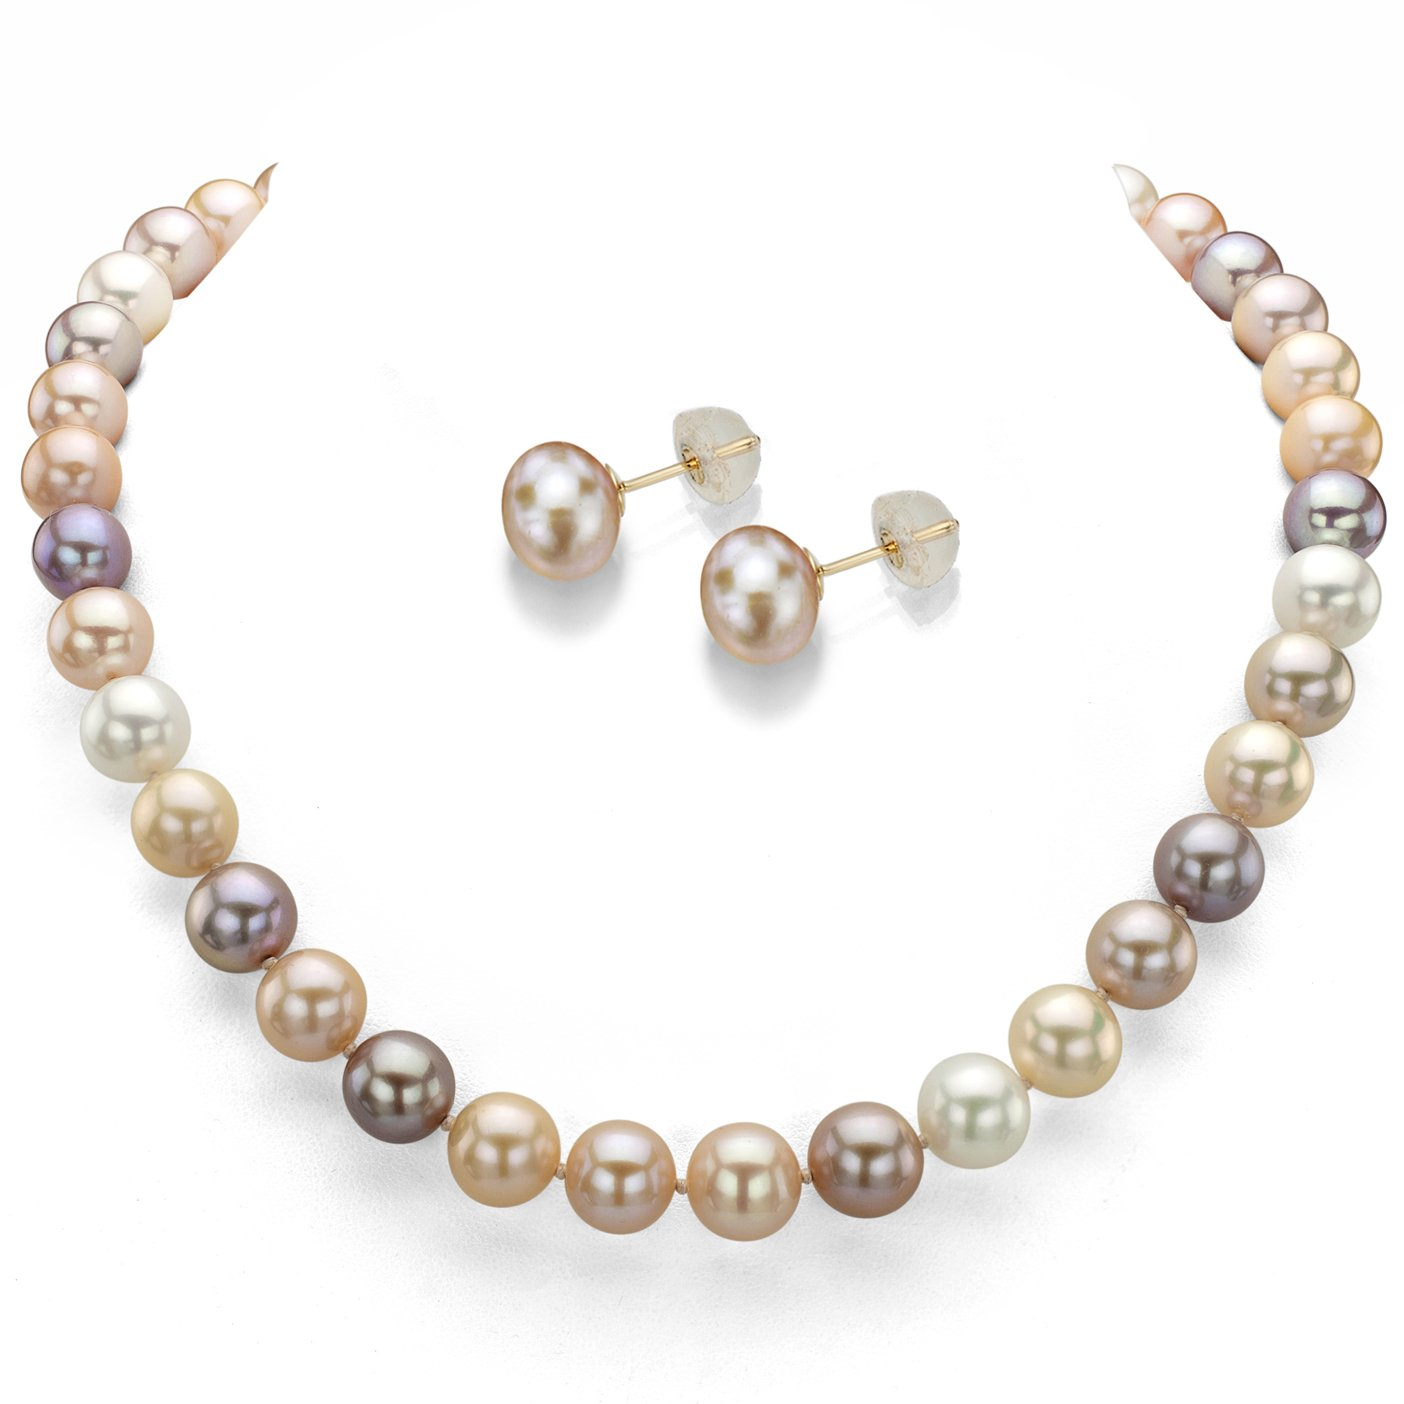 14k Yellow Gold 7-7.5mm Multi-pink Freshwater Cultured Pearl Necklace 18'' and Stud Earrings Set